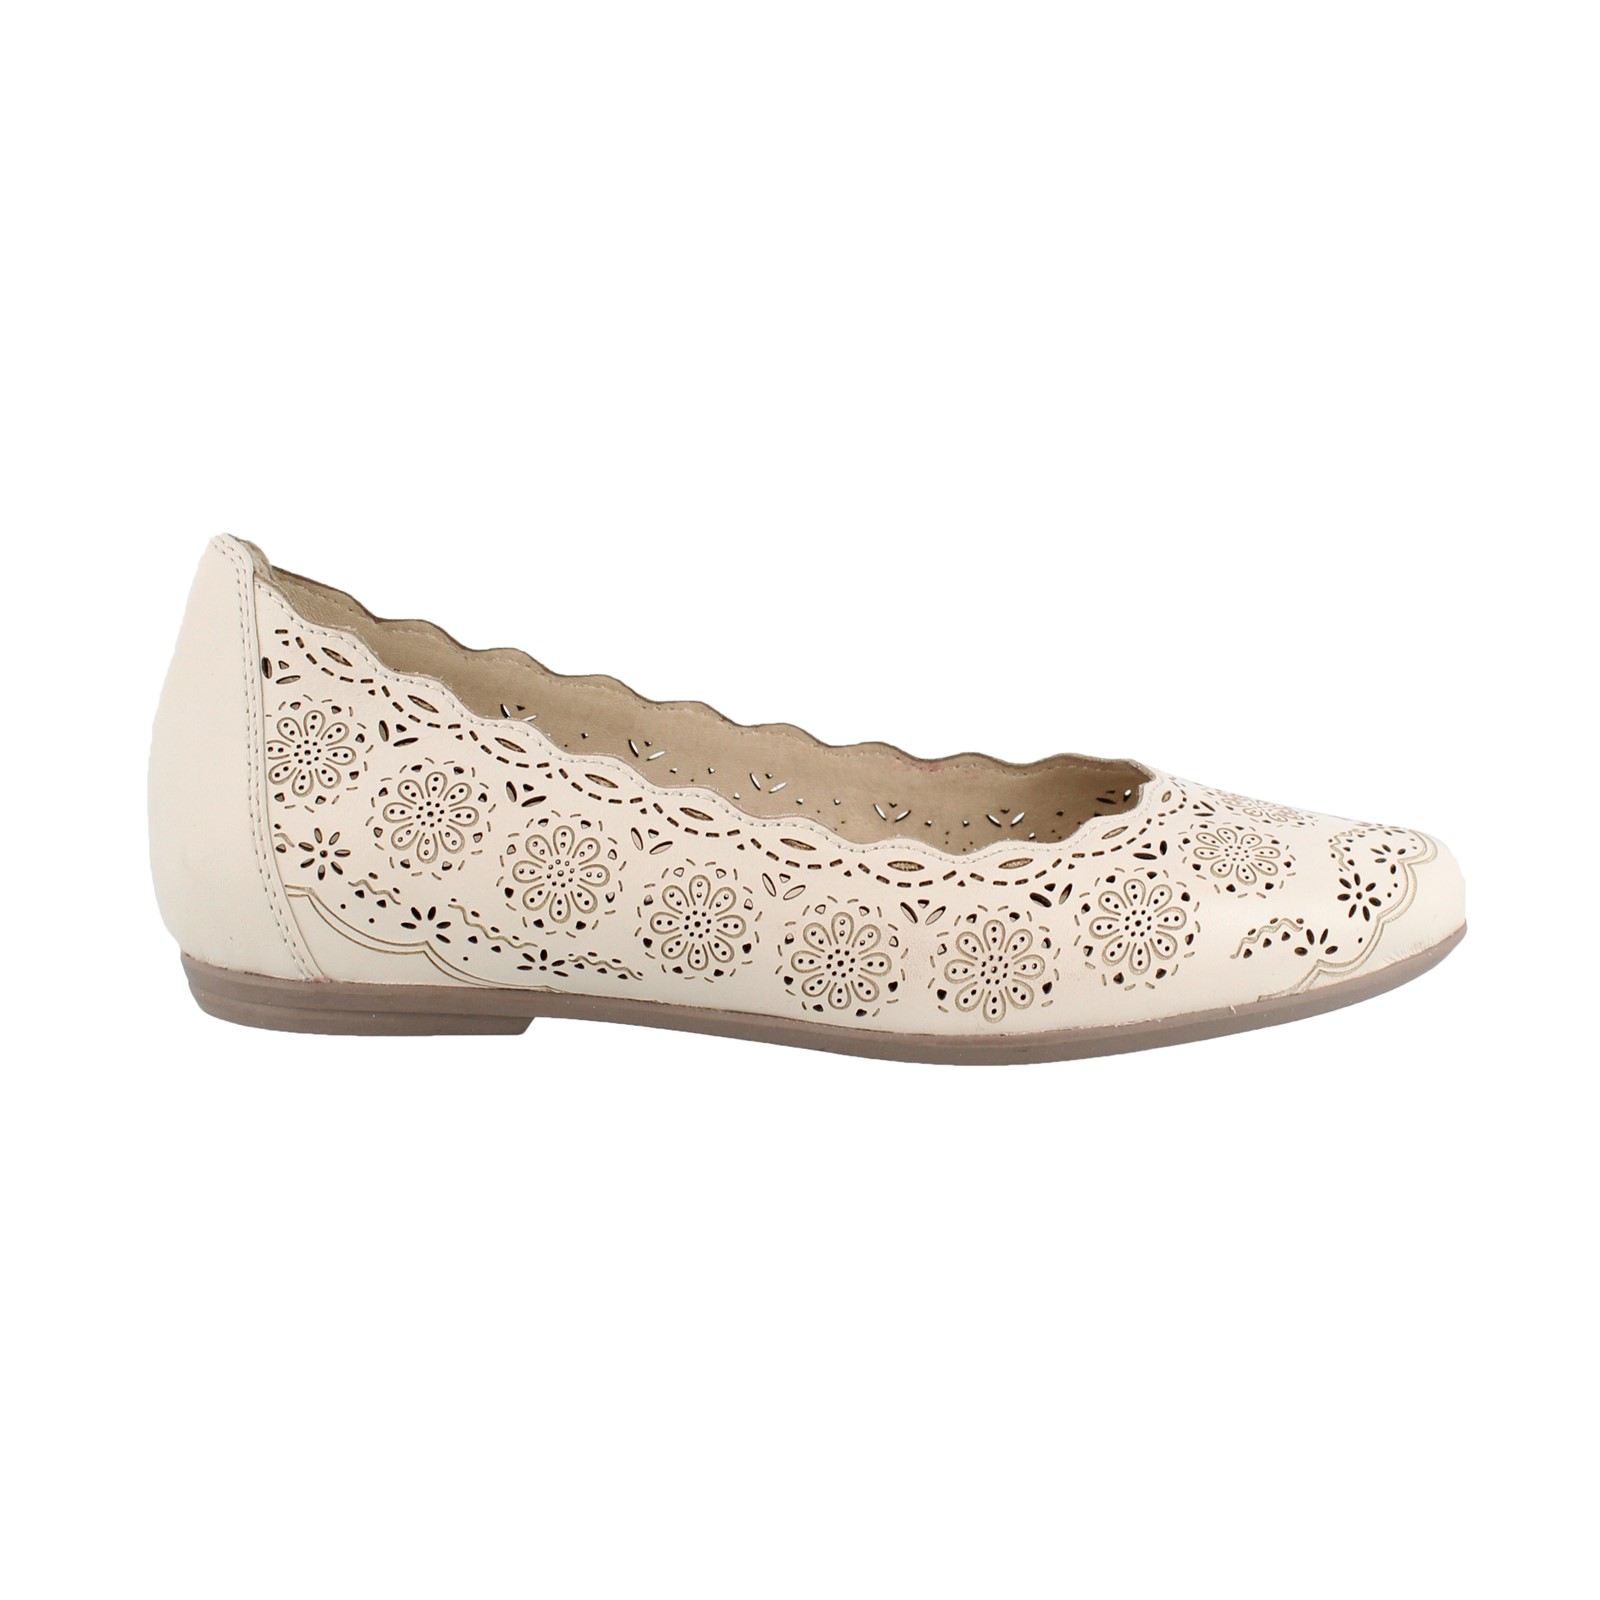 Women's Earthies, Lindi Slip on Flats